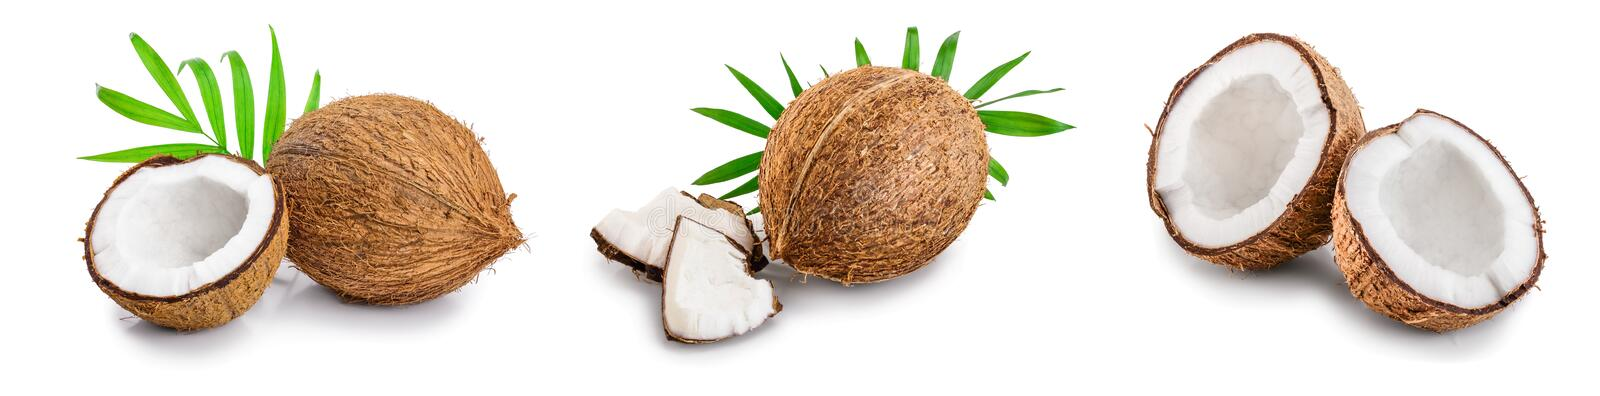 Coconut with leaves isolated on white background. Set or collection.  royalty free stock images